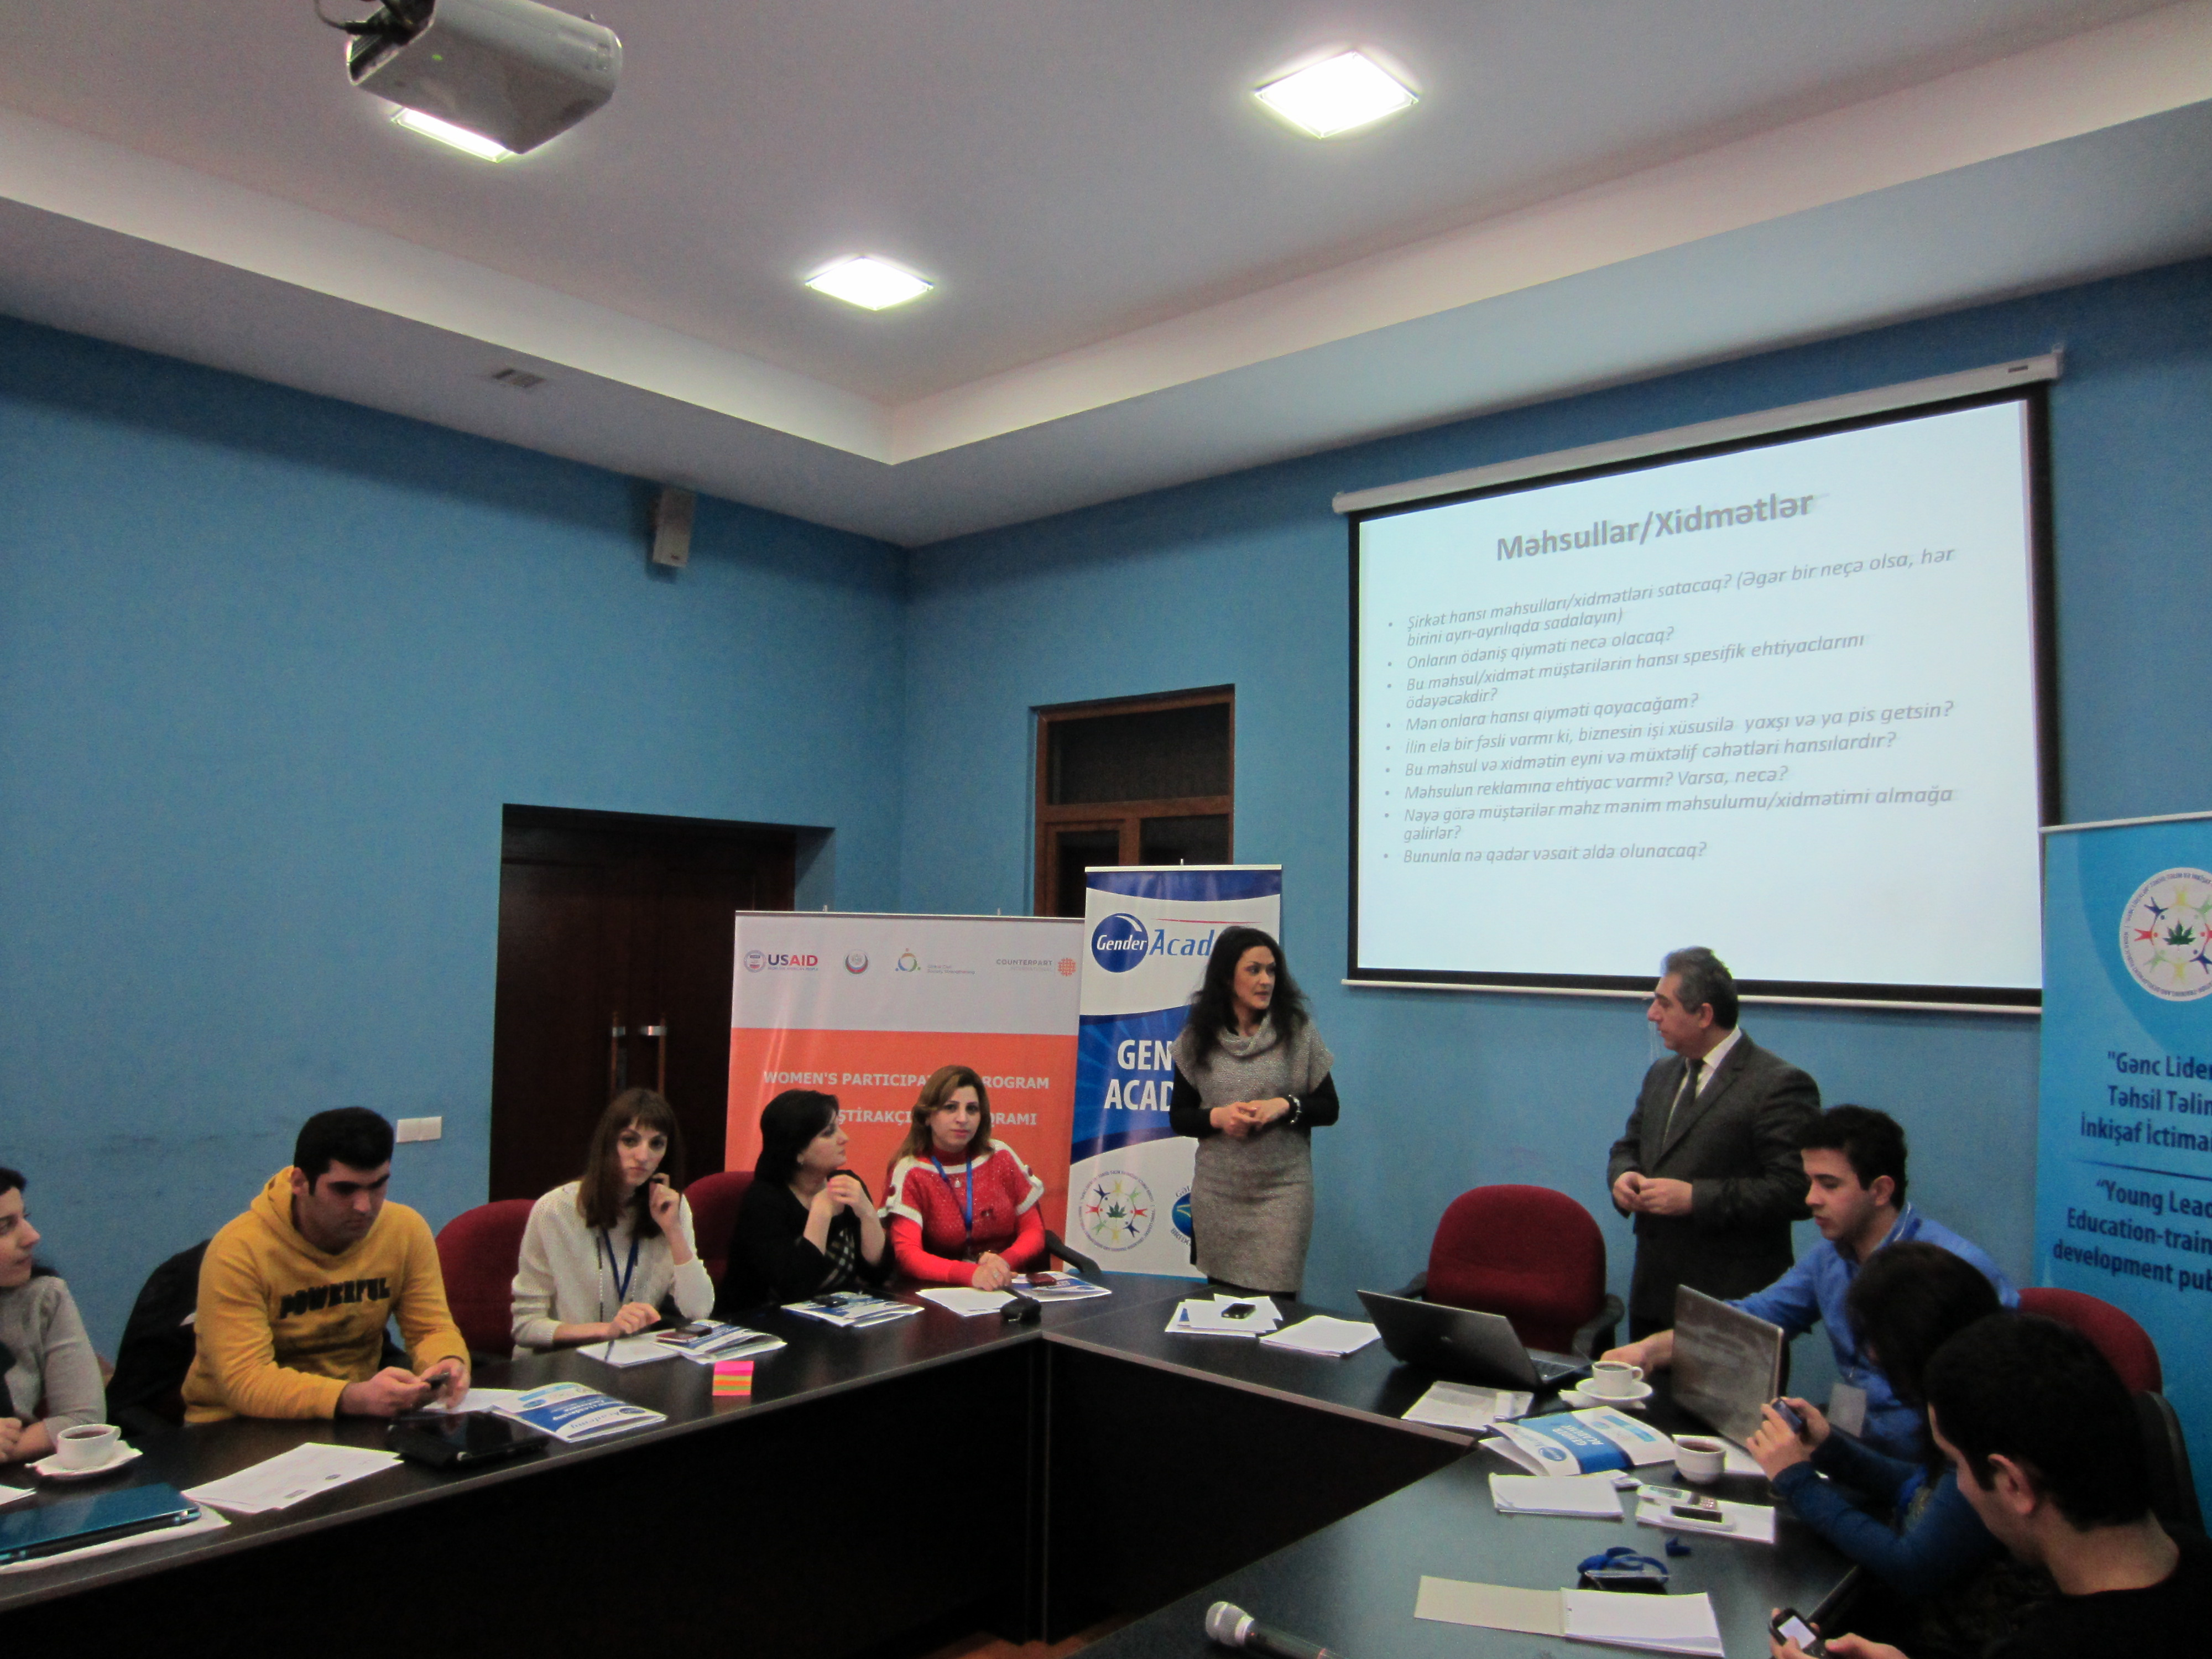 """USAID Joins United Nations Democracy Fund to Organize """"Gender Academy"""" for Youth"""